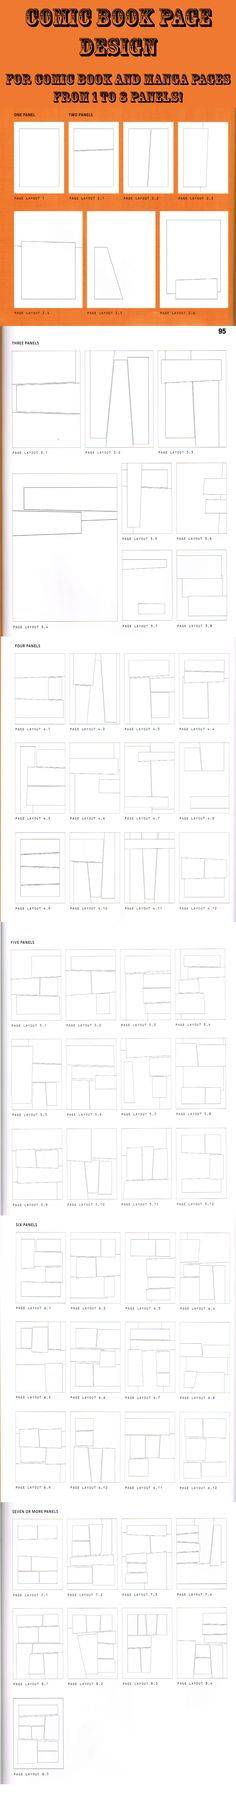 Layouts that are usable for both Comic books and Manga pages with anywhere from 1 to 8 panels.